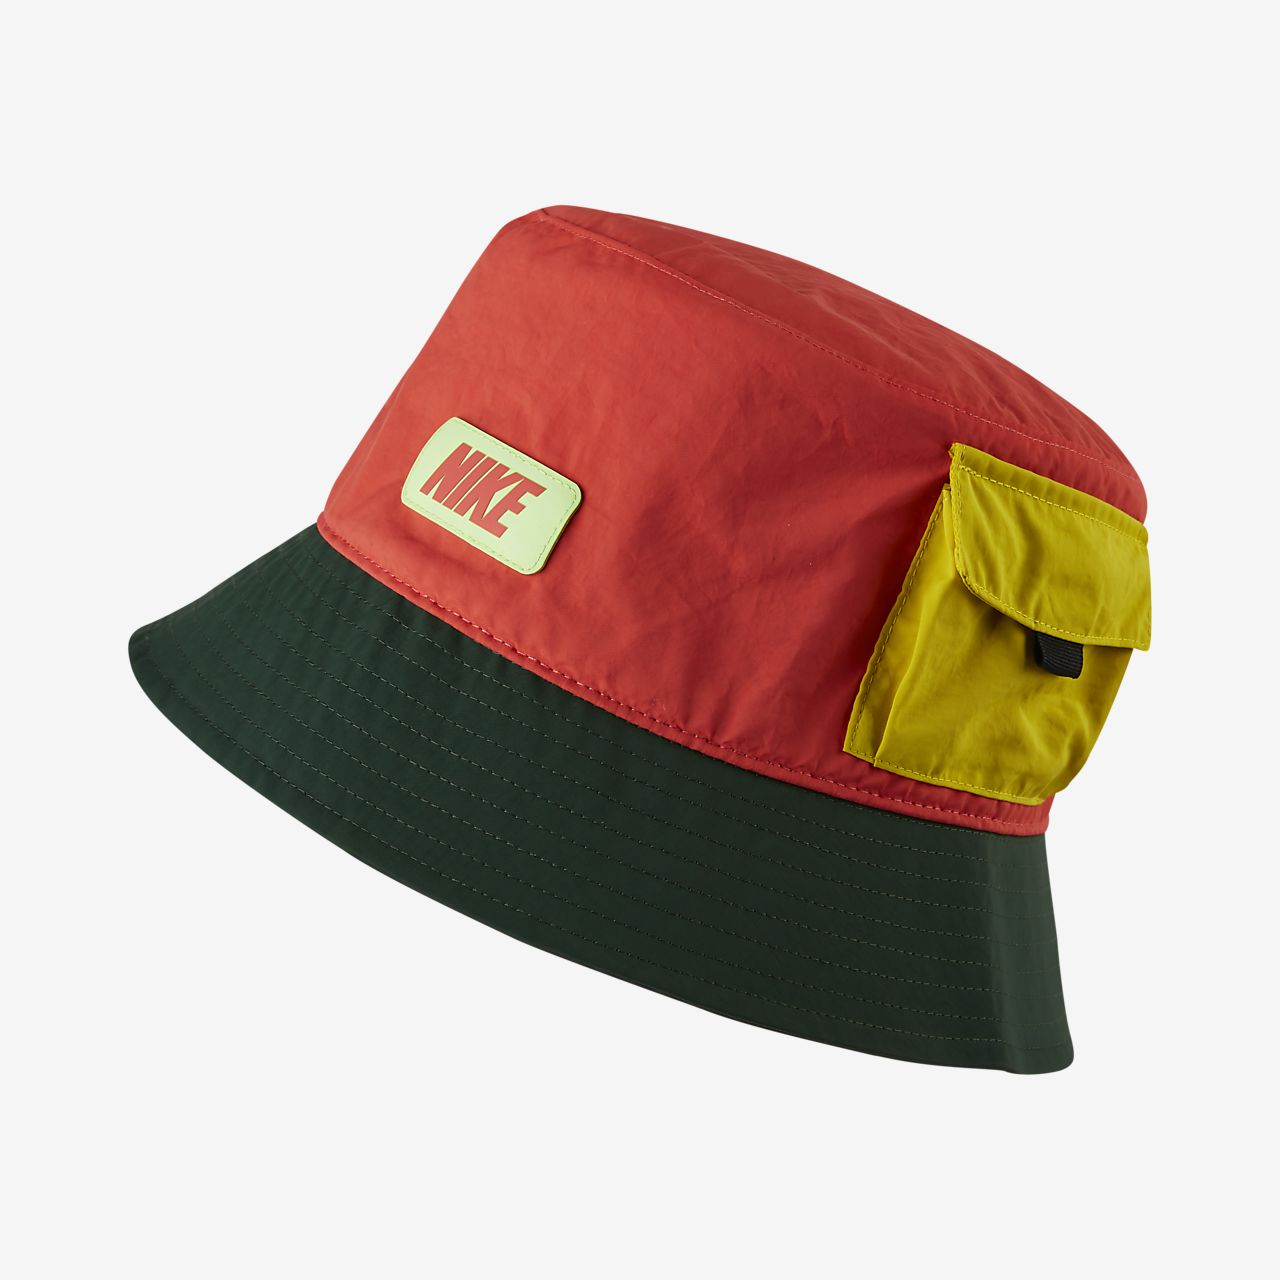 002a43d26 Nike Bucket Hat. Nike.com GB